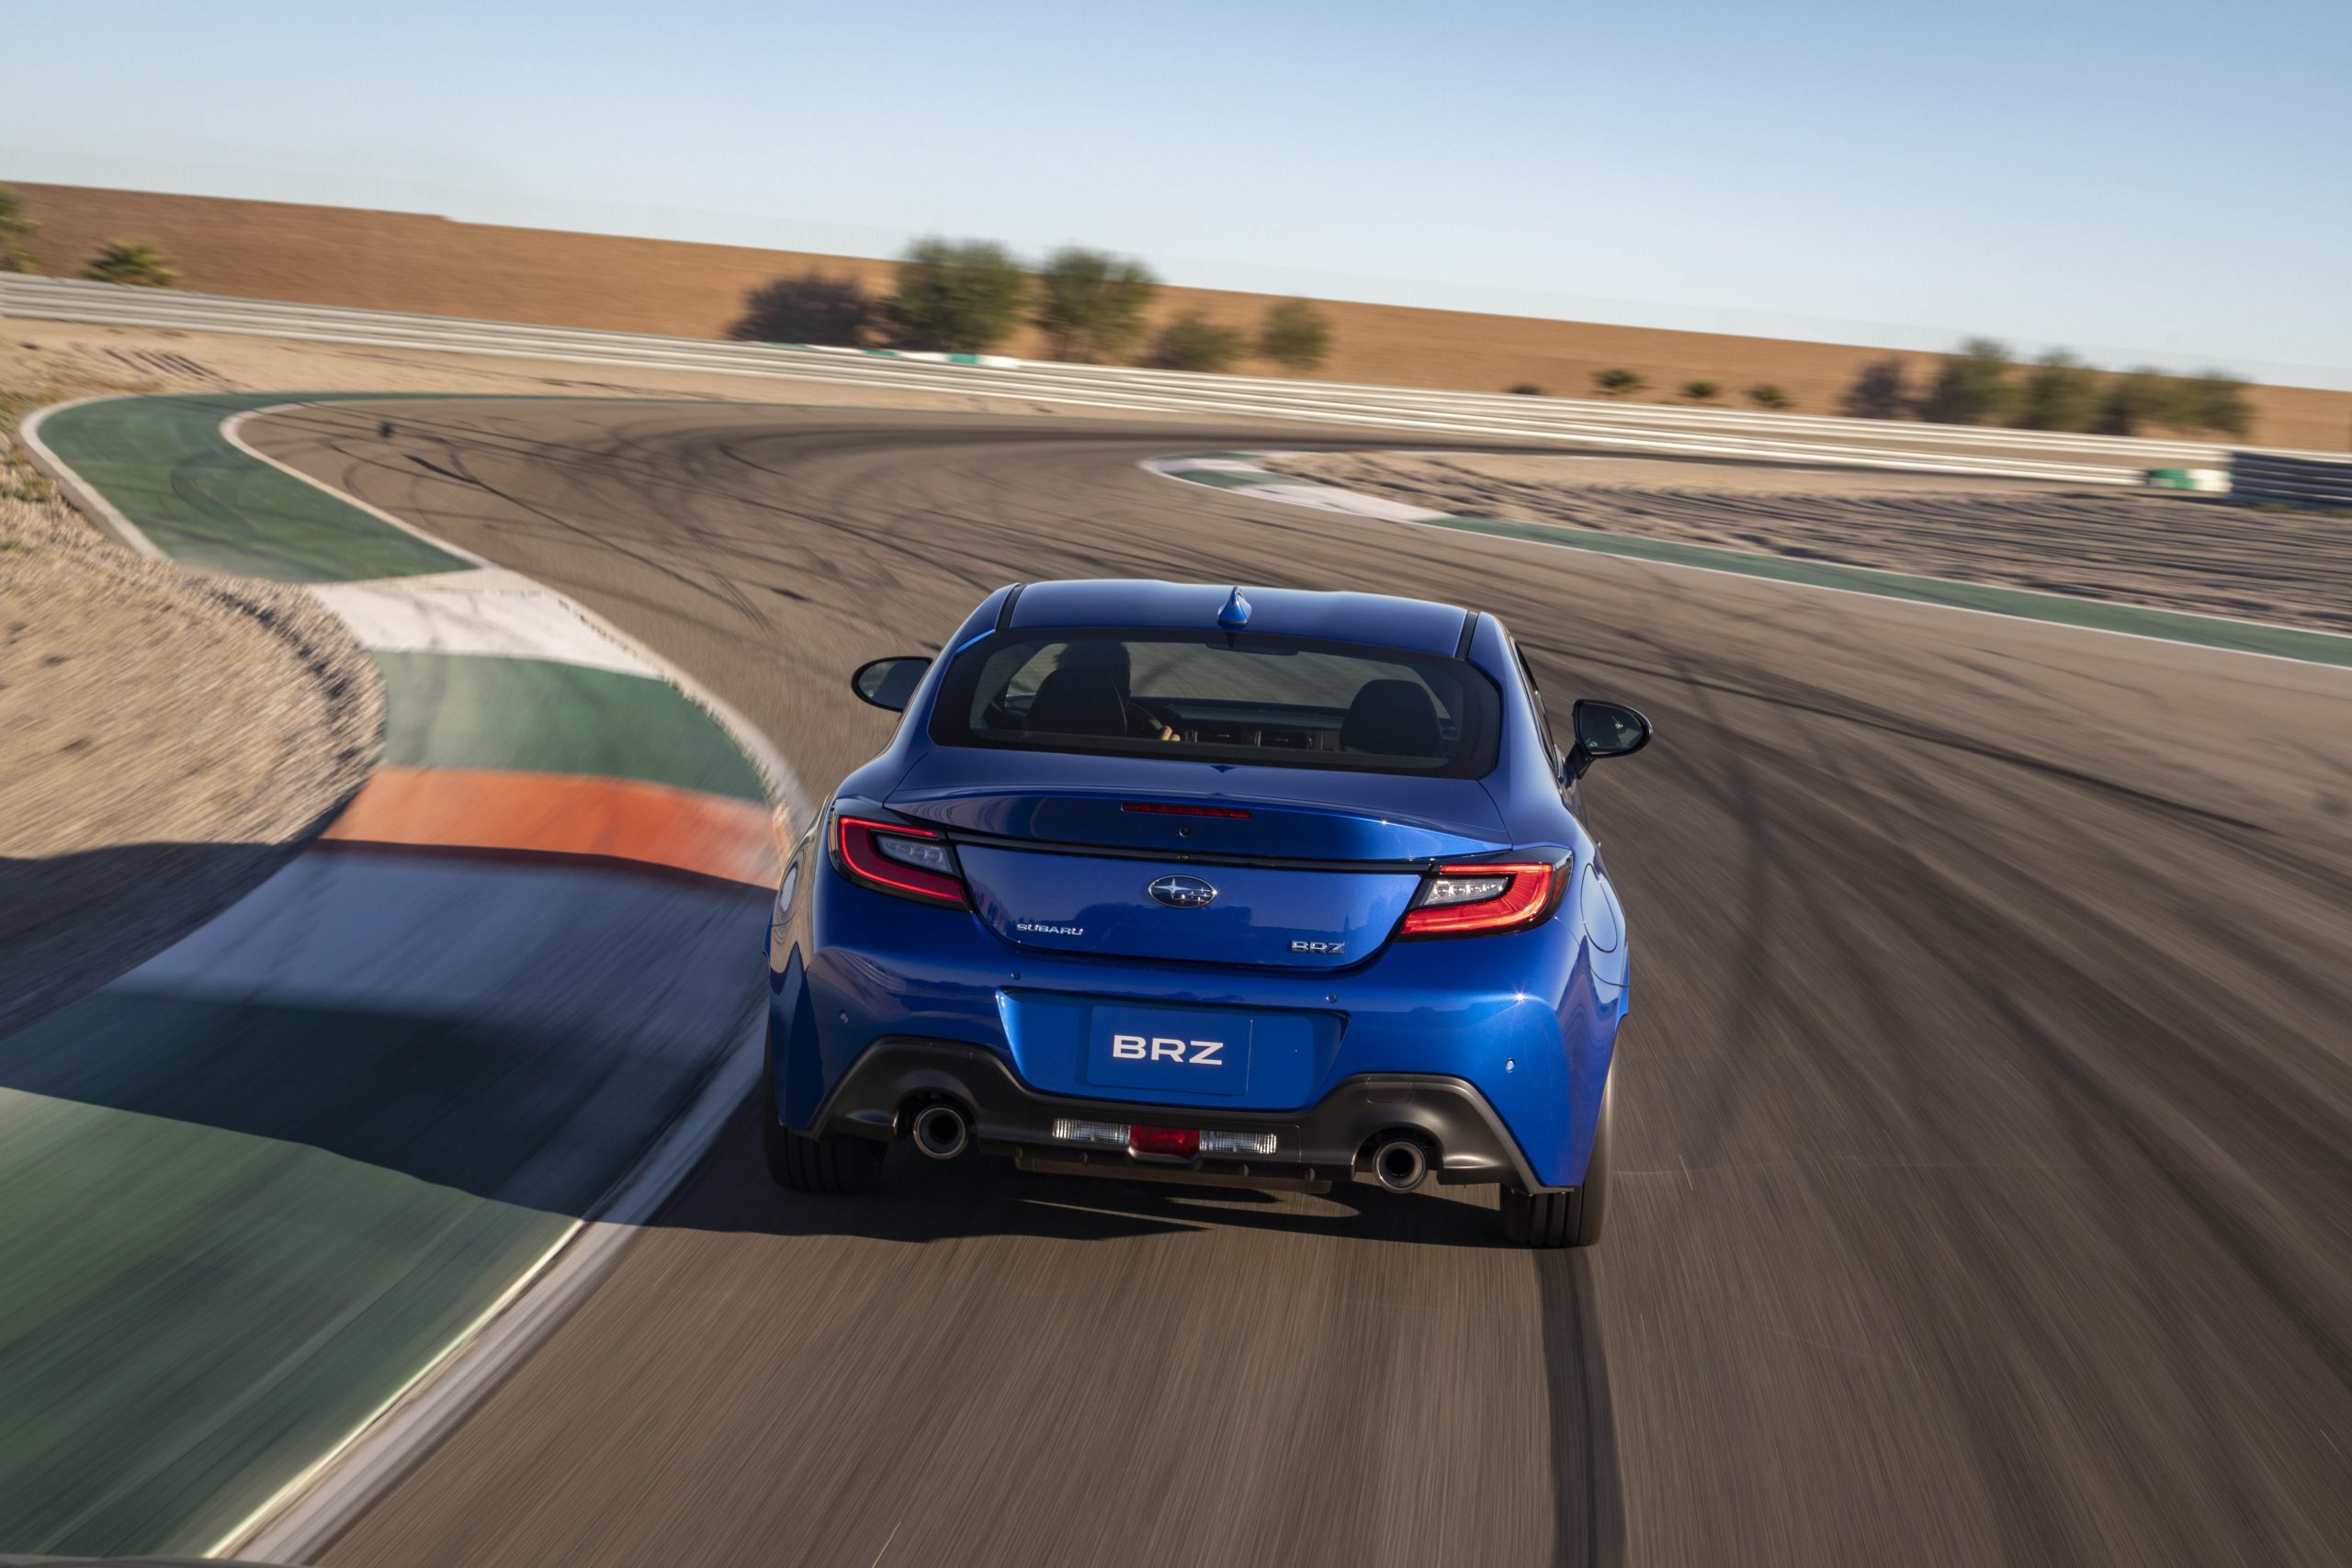 New 2022 Subaru BRZ rear track action